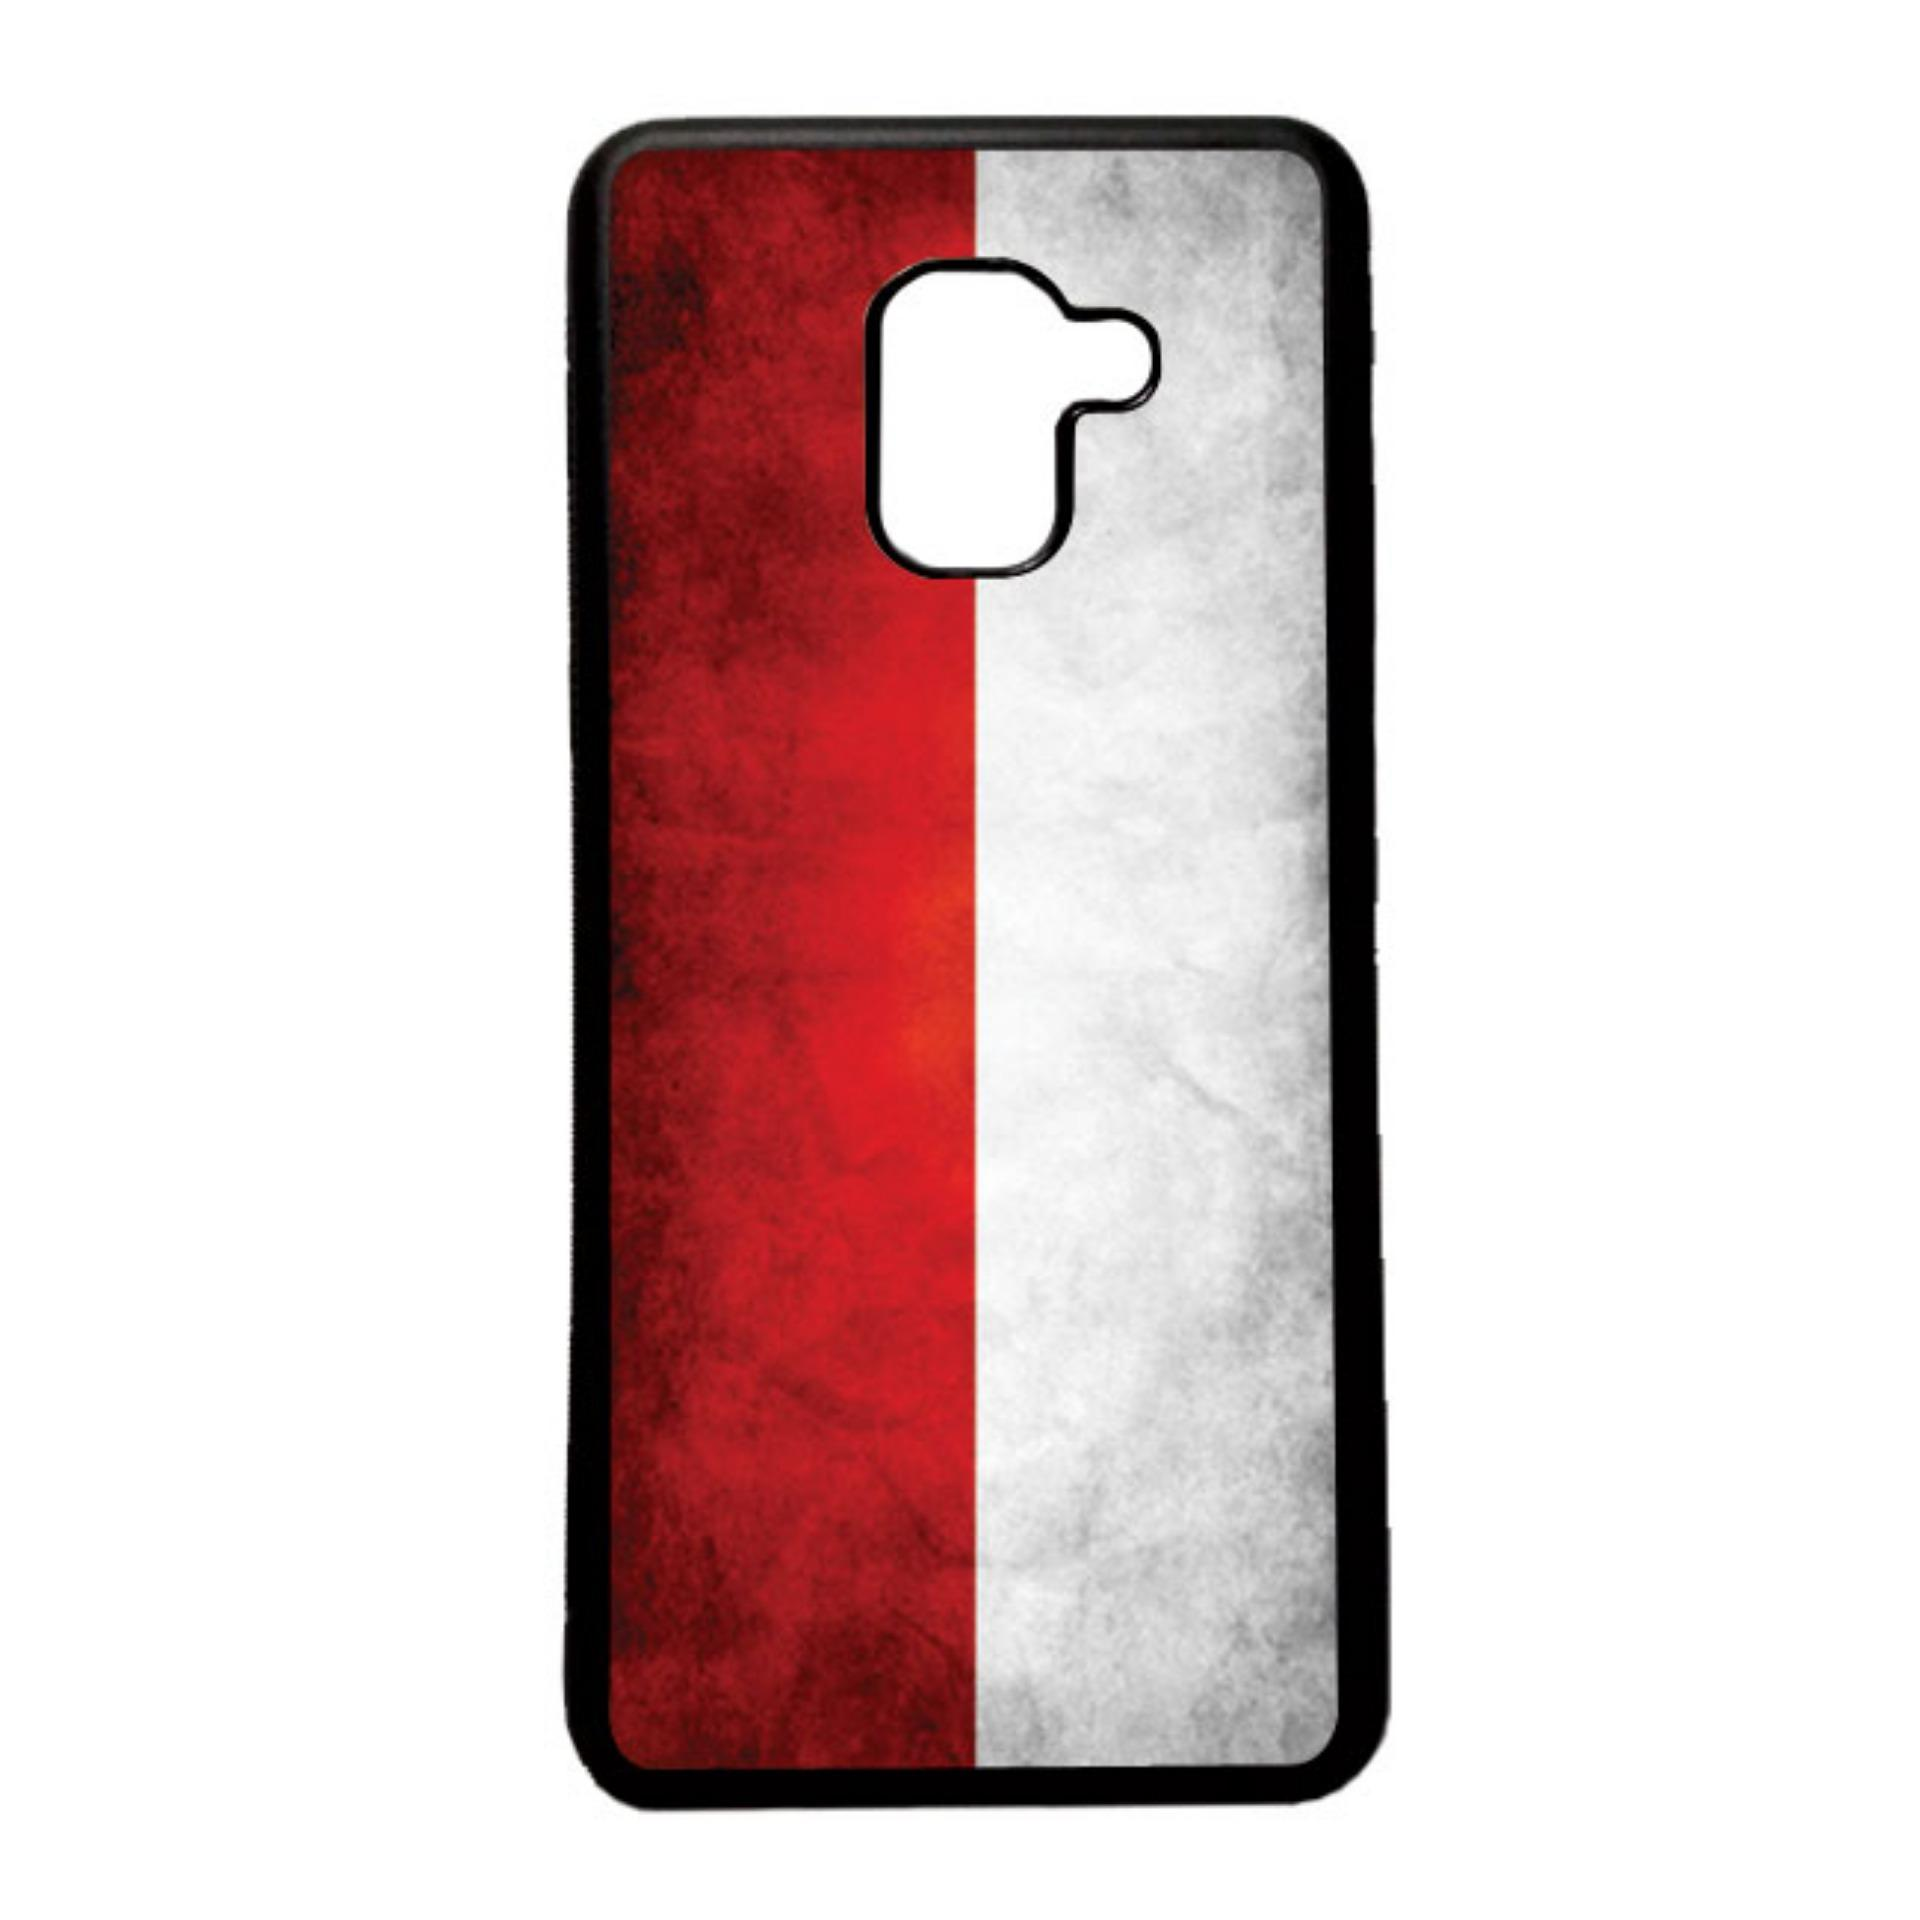 HEAVENCASE Case Casing Samsung Galaxy A8 2018 Case Softcase Hitam Motif Bendera Indonesia